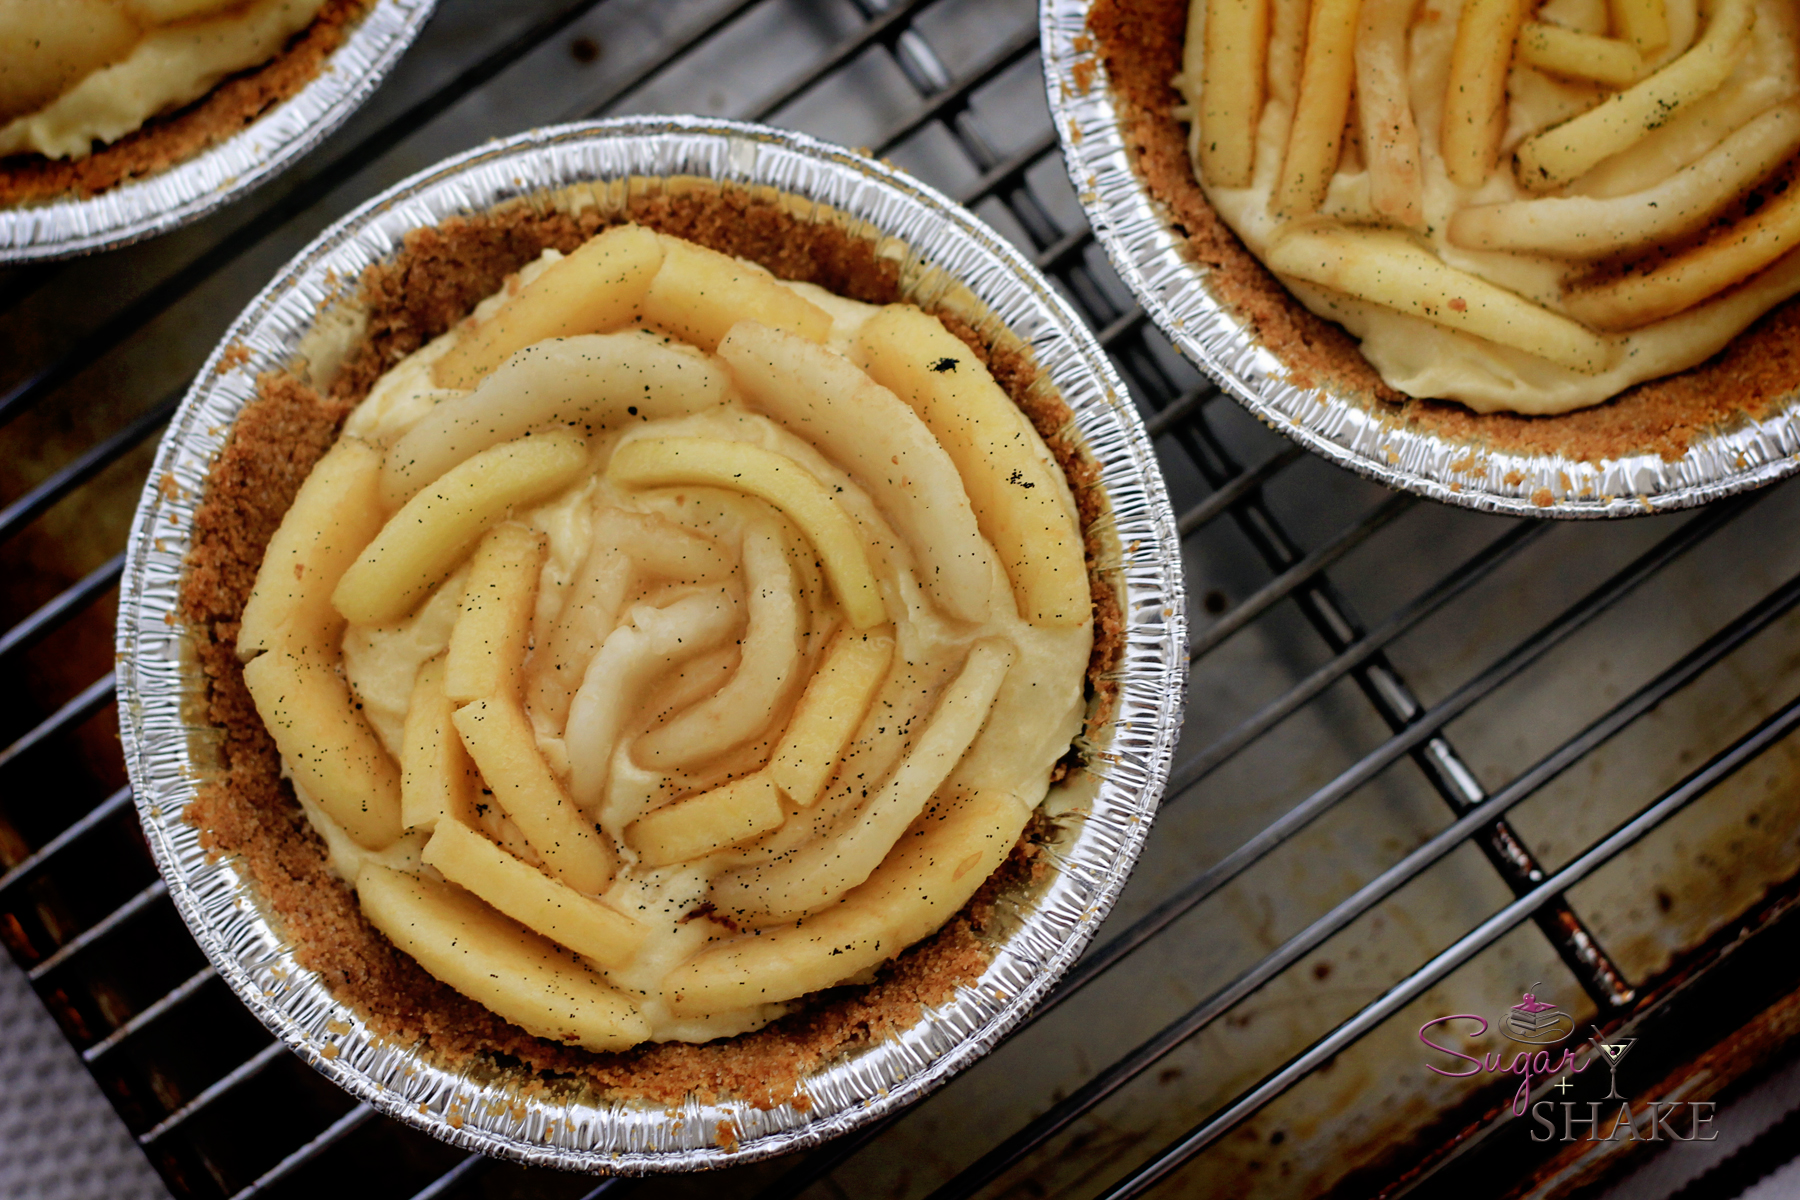 Apple and pear slices set in a rose pattern into an almond custard filling. Graham cracker crust. © 2012 Sugar + Shake